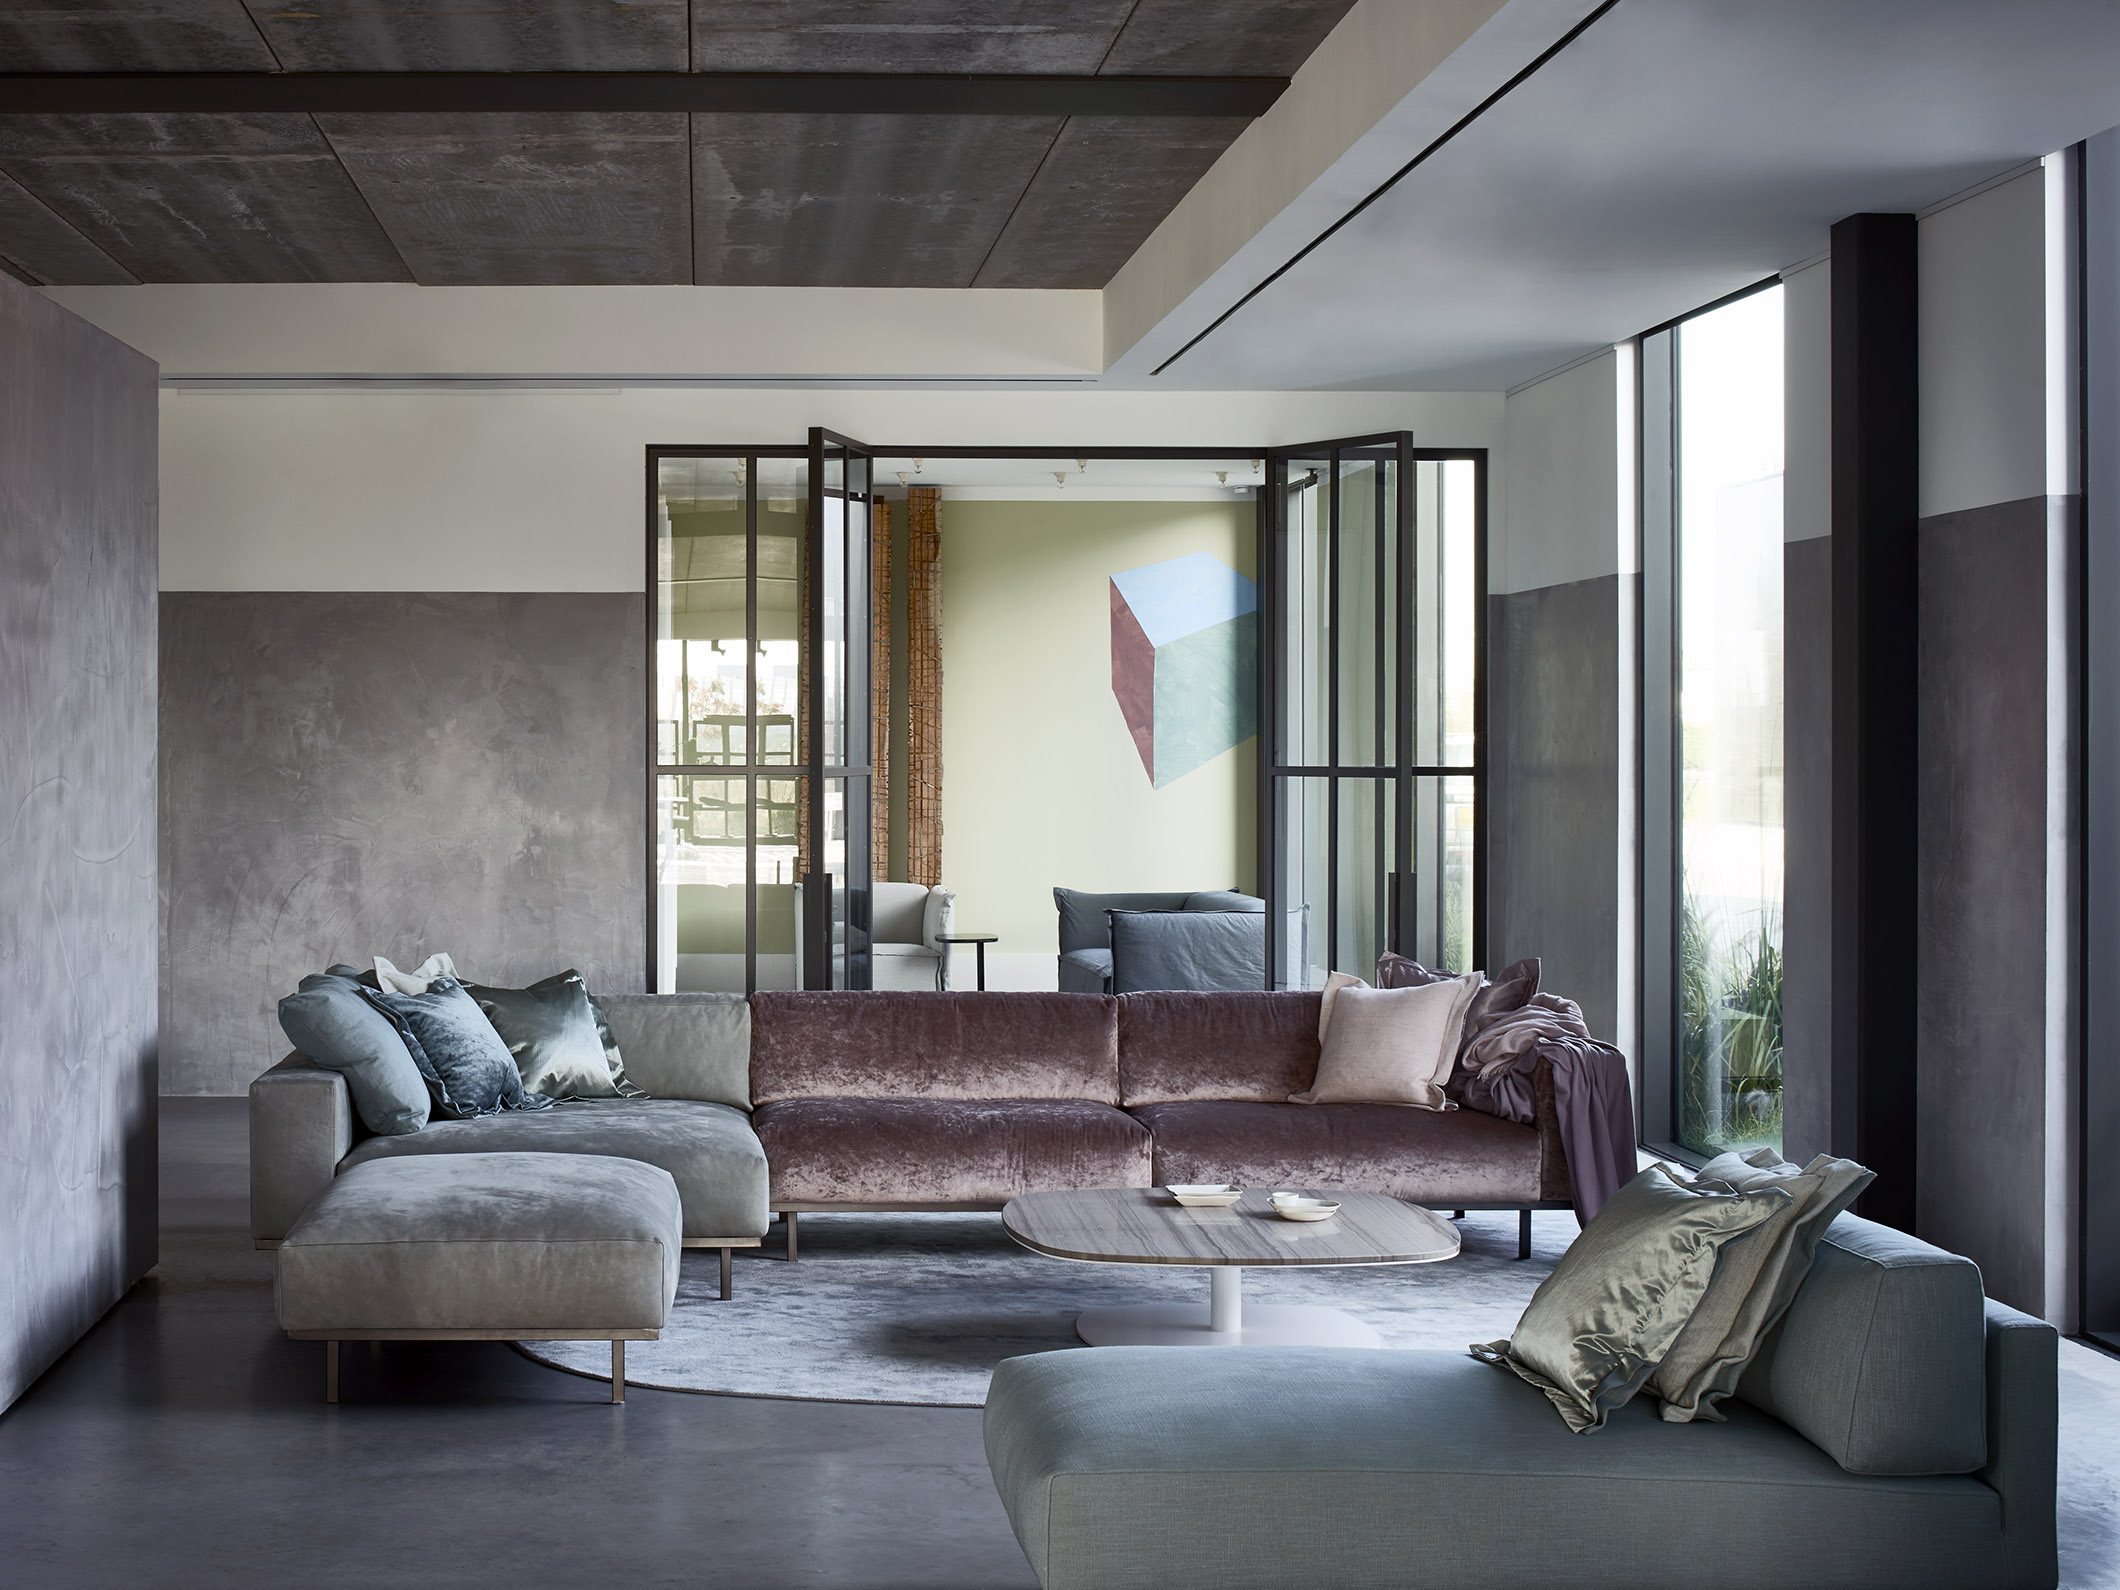 Piet Boon Interieur.Piet Boon Collection Don Sofa Baden Baden Interior